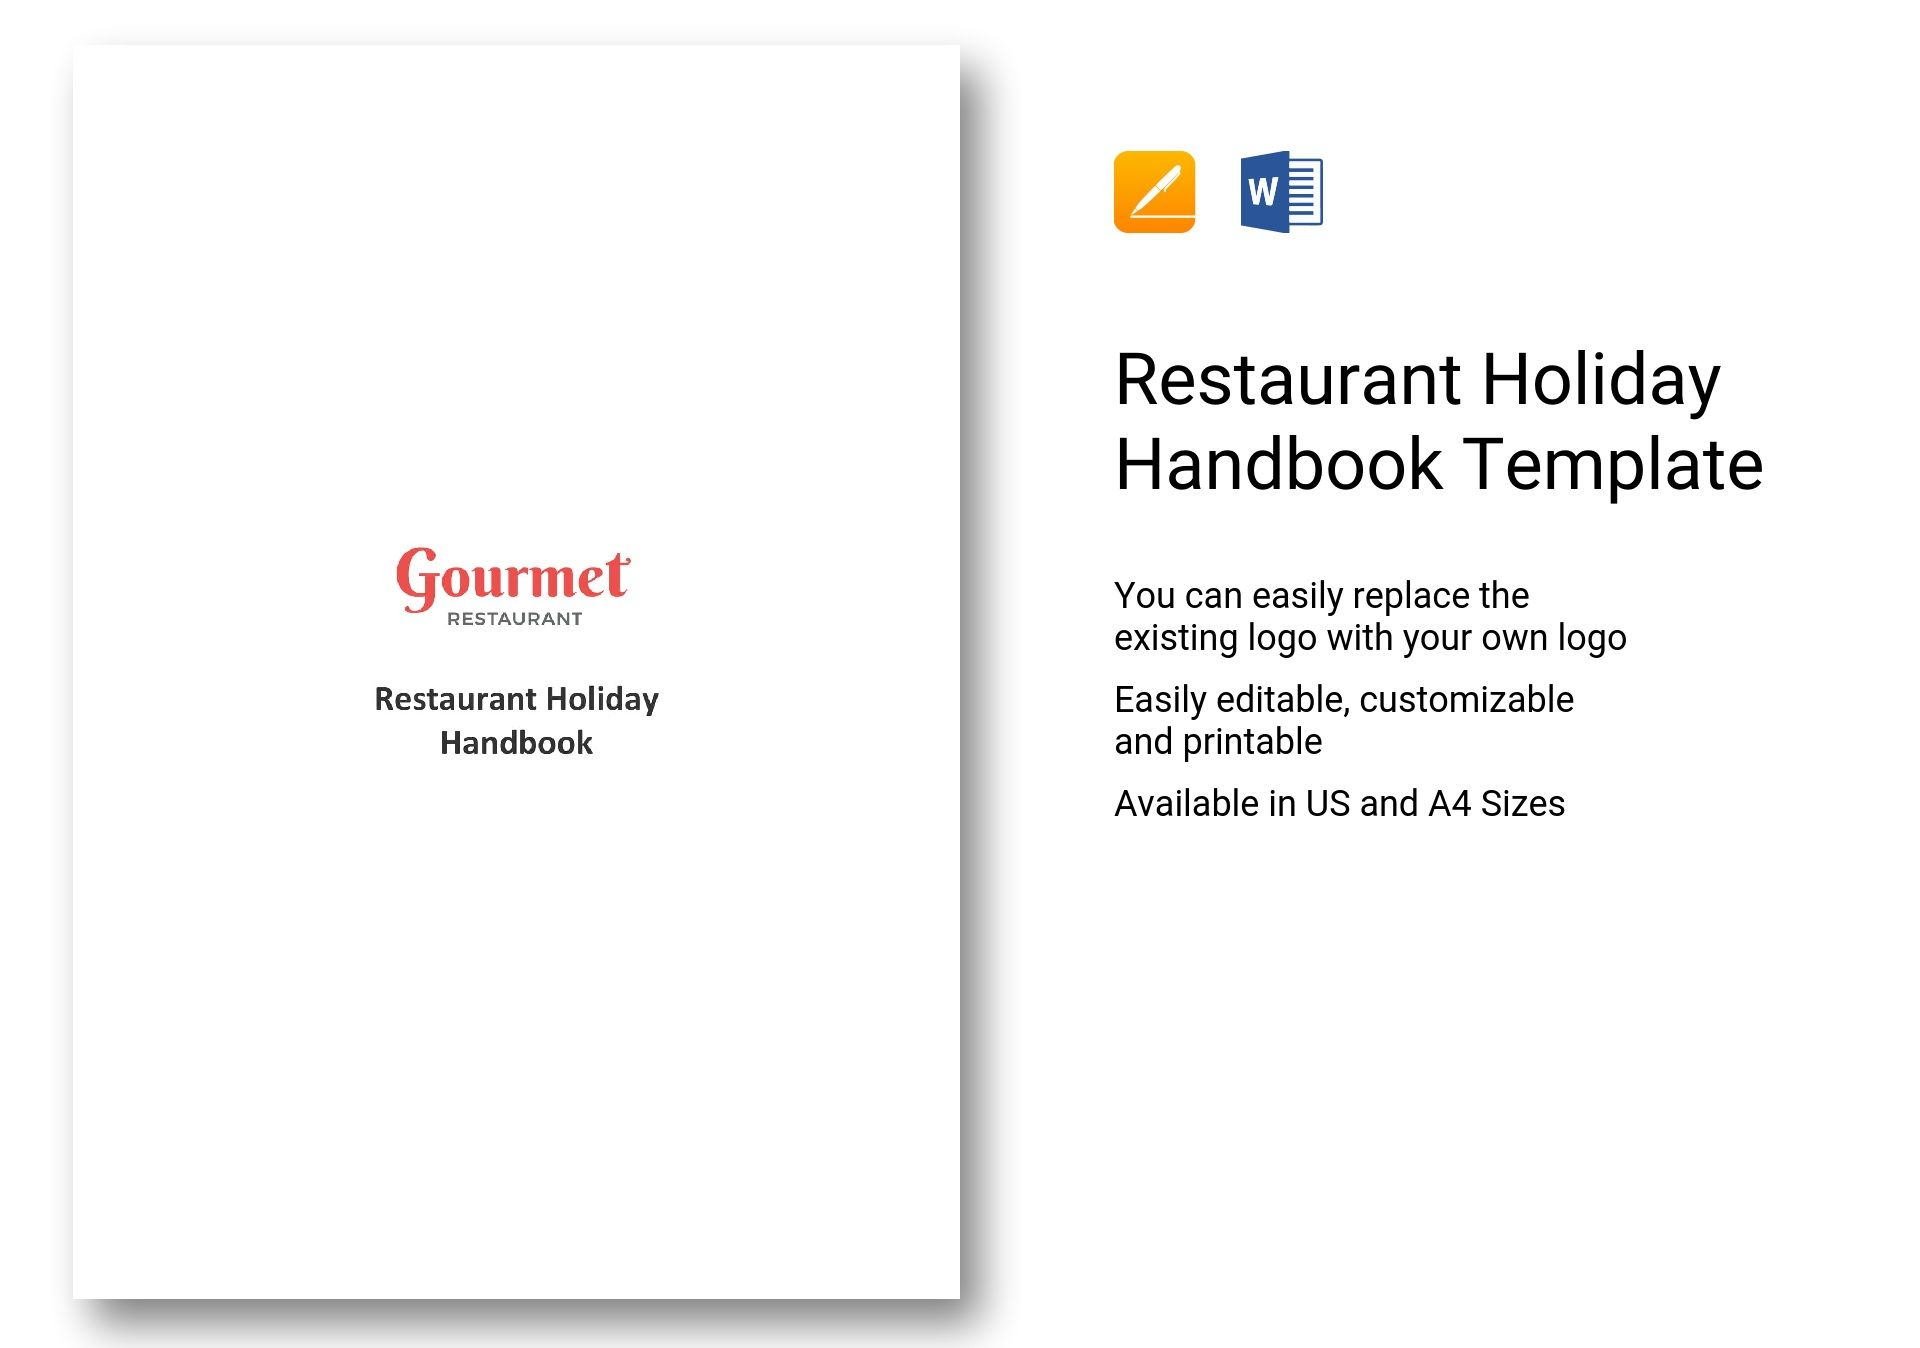 Restaurant Holiday Handbook